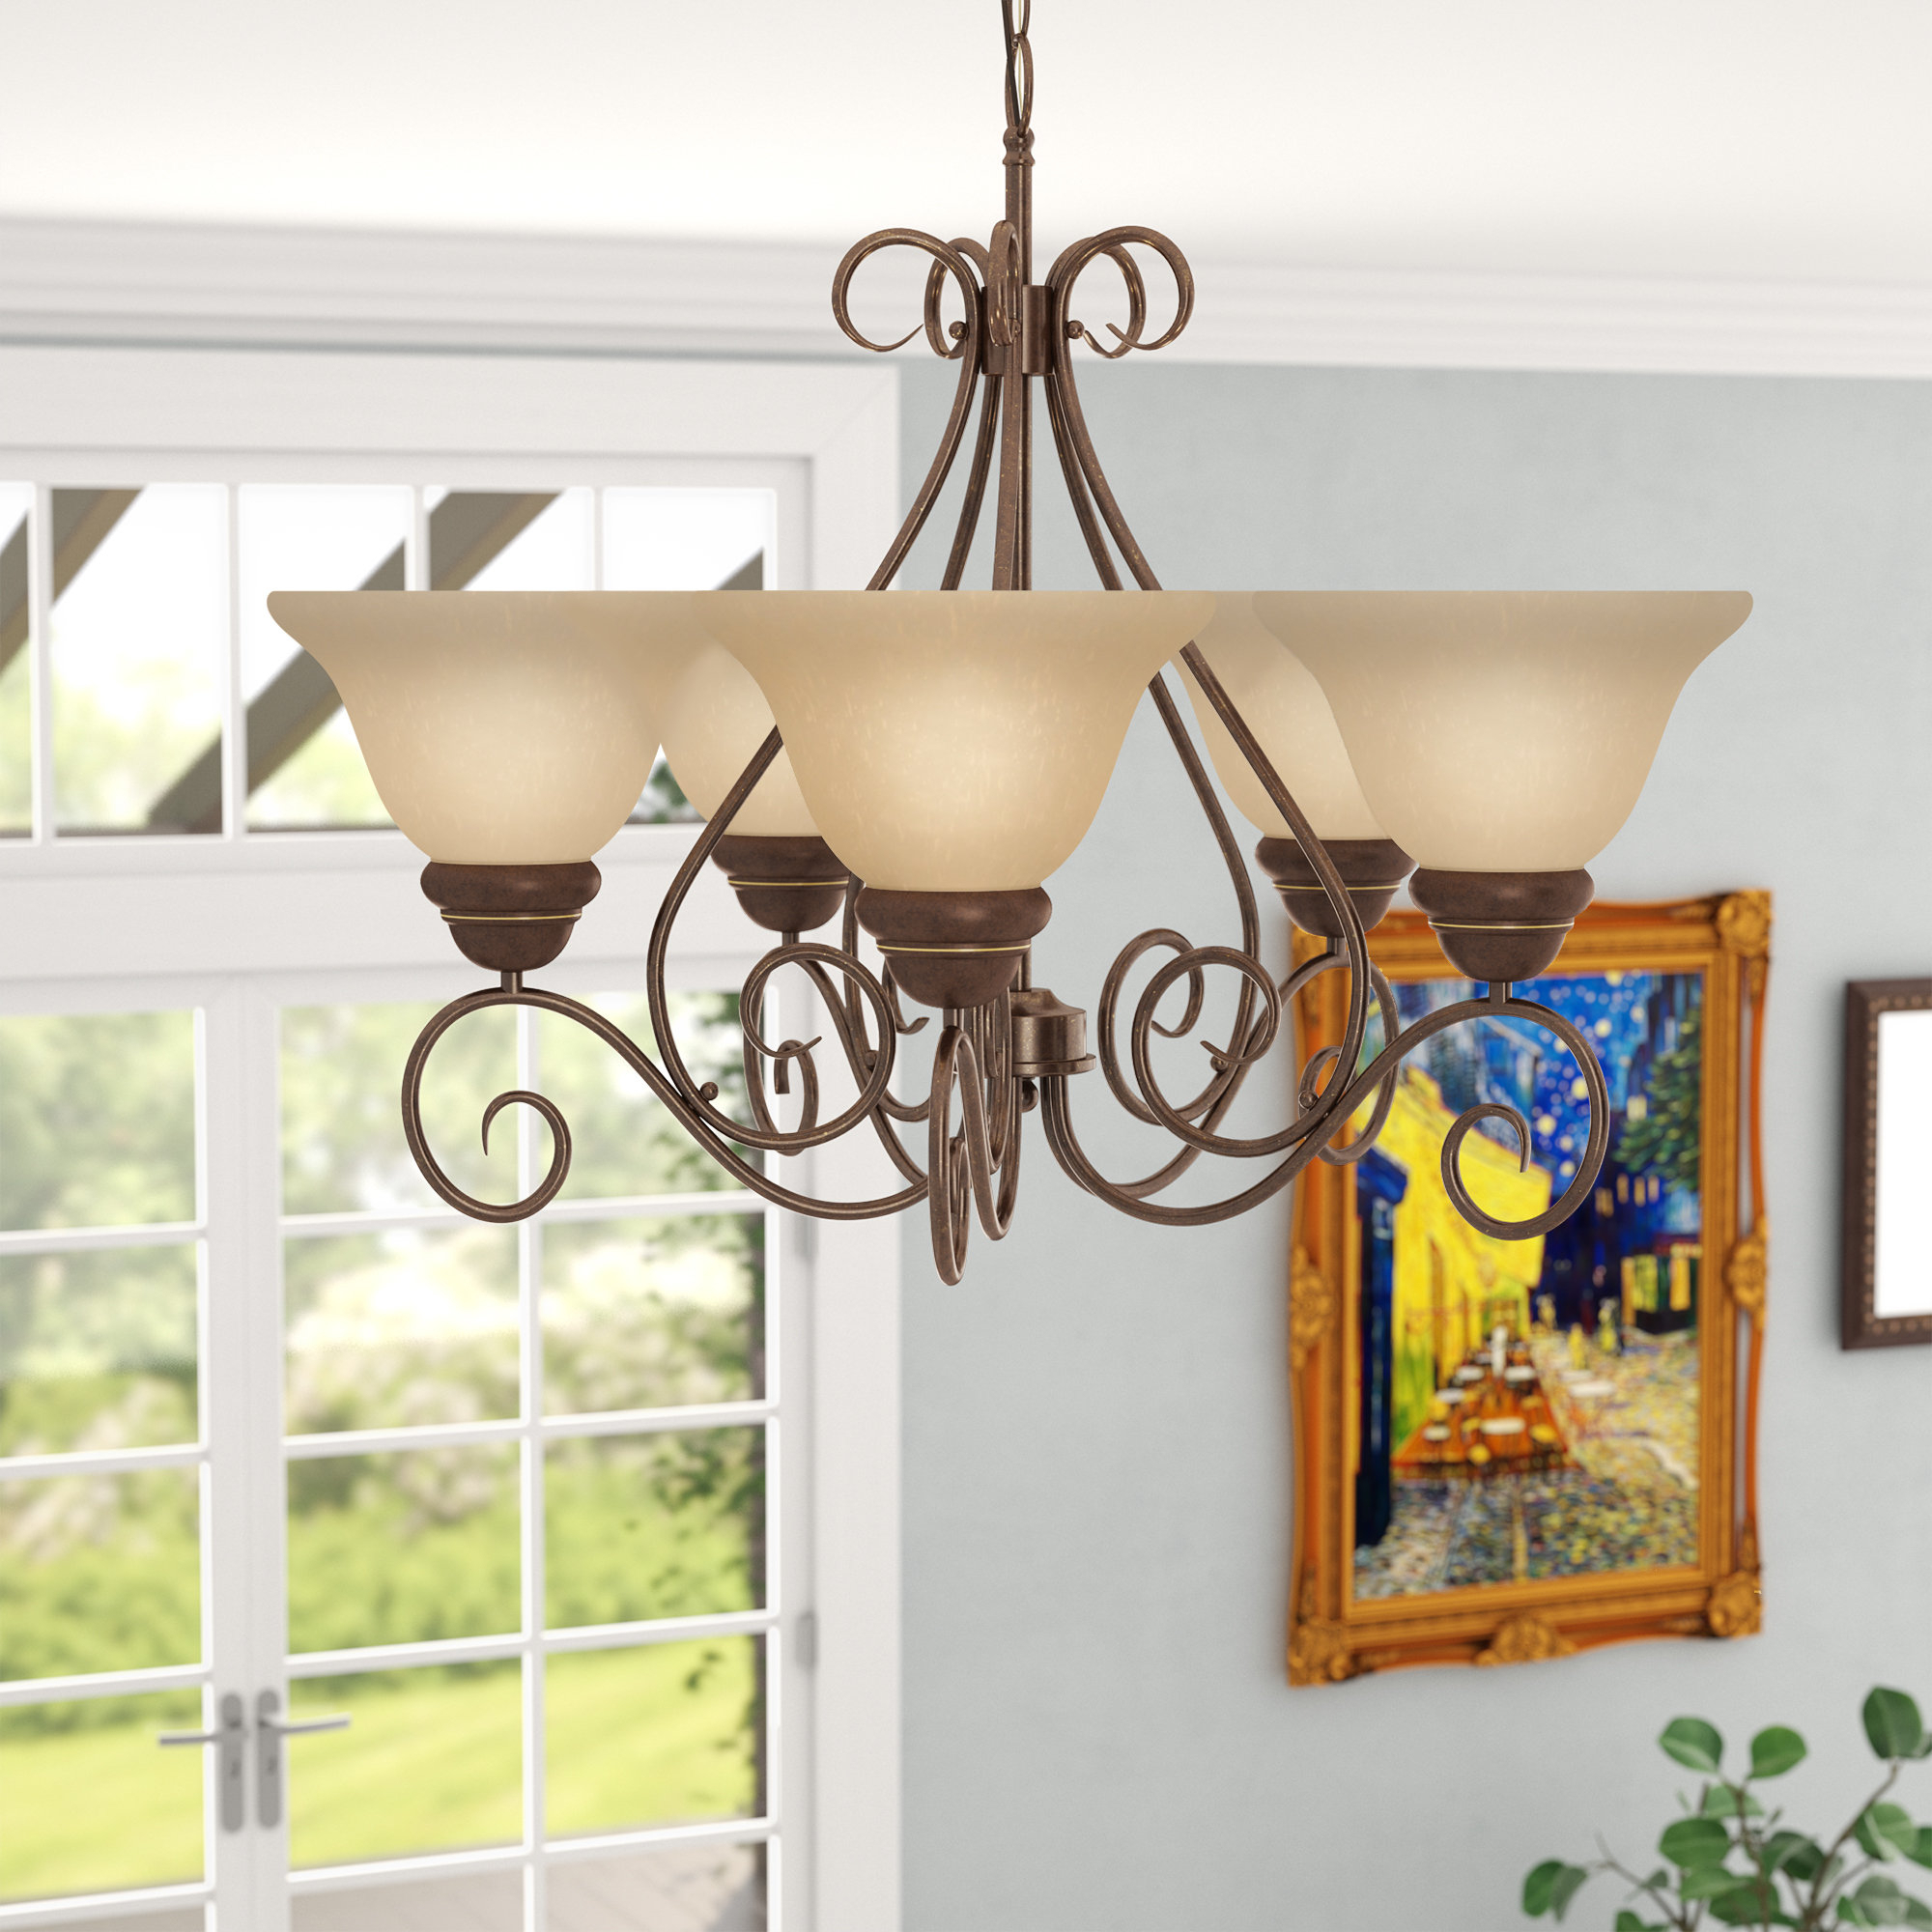 Claycomb 5 Light Shaded Chandelier Regarding Gaines 5 Light Shaded Chandeliers (View 1 of 30)